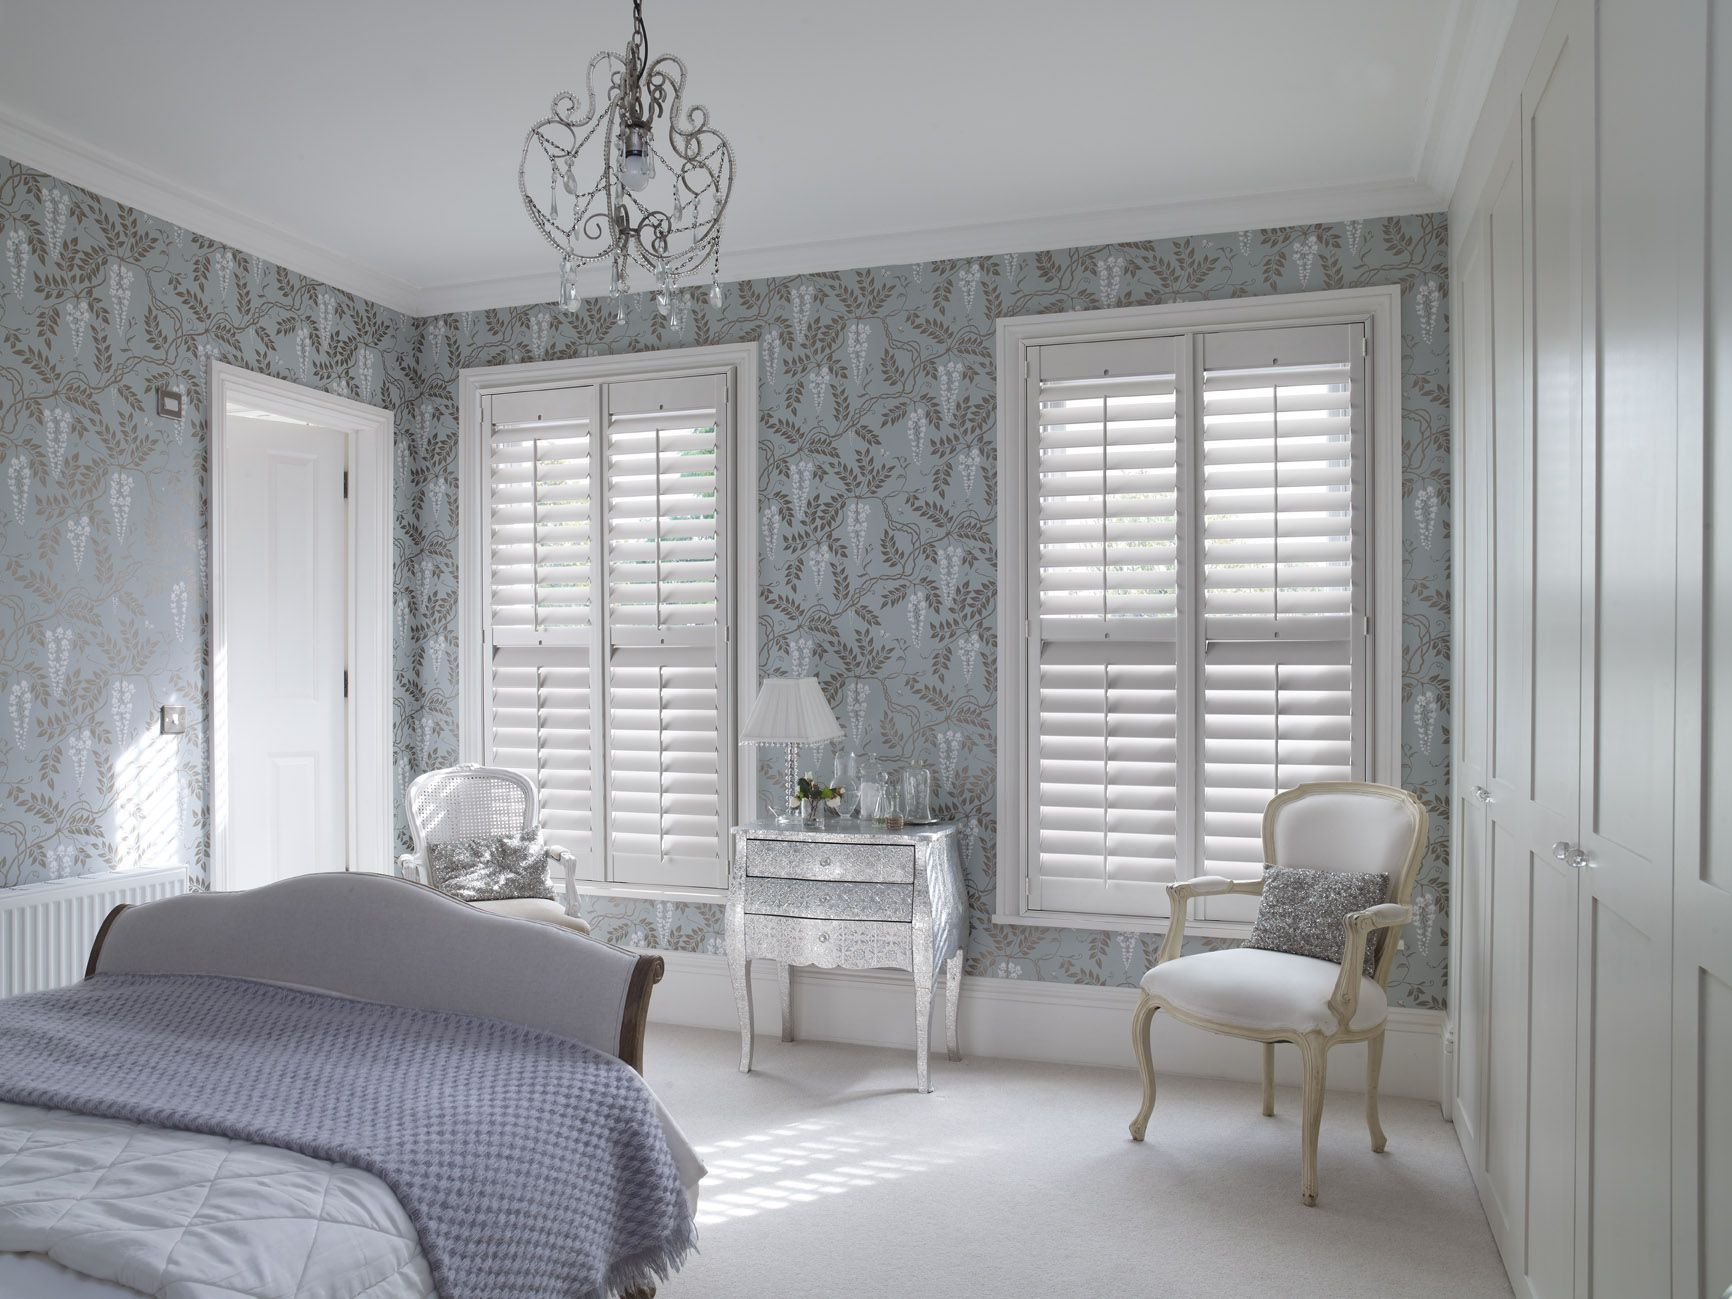 Window decor for bedroom  pin by karen lawson on pl style  pinterest  bedrooms curtain